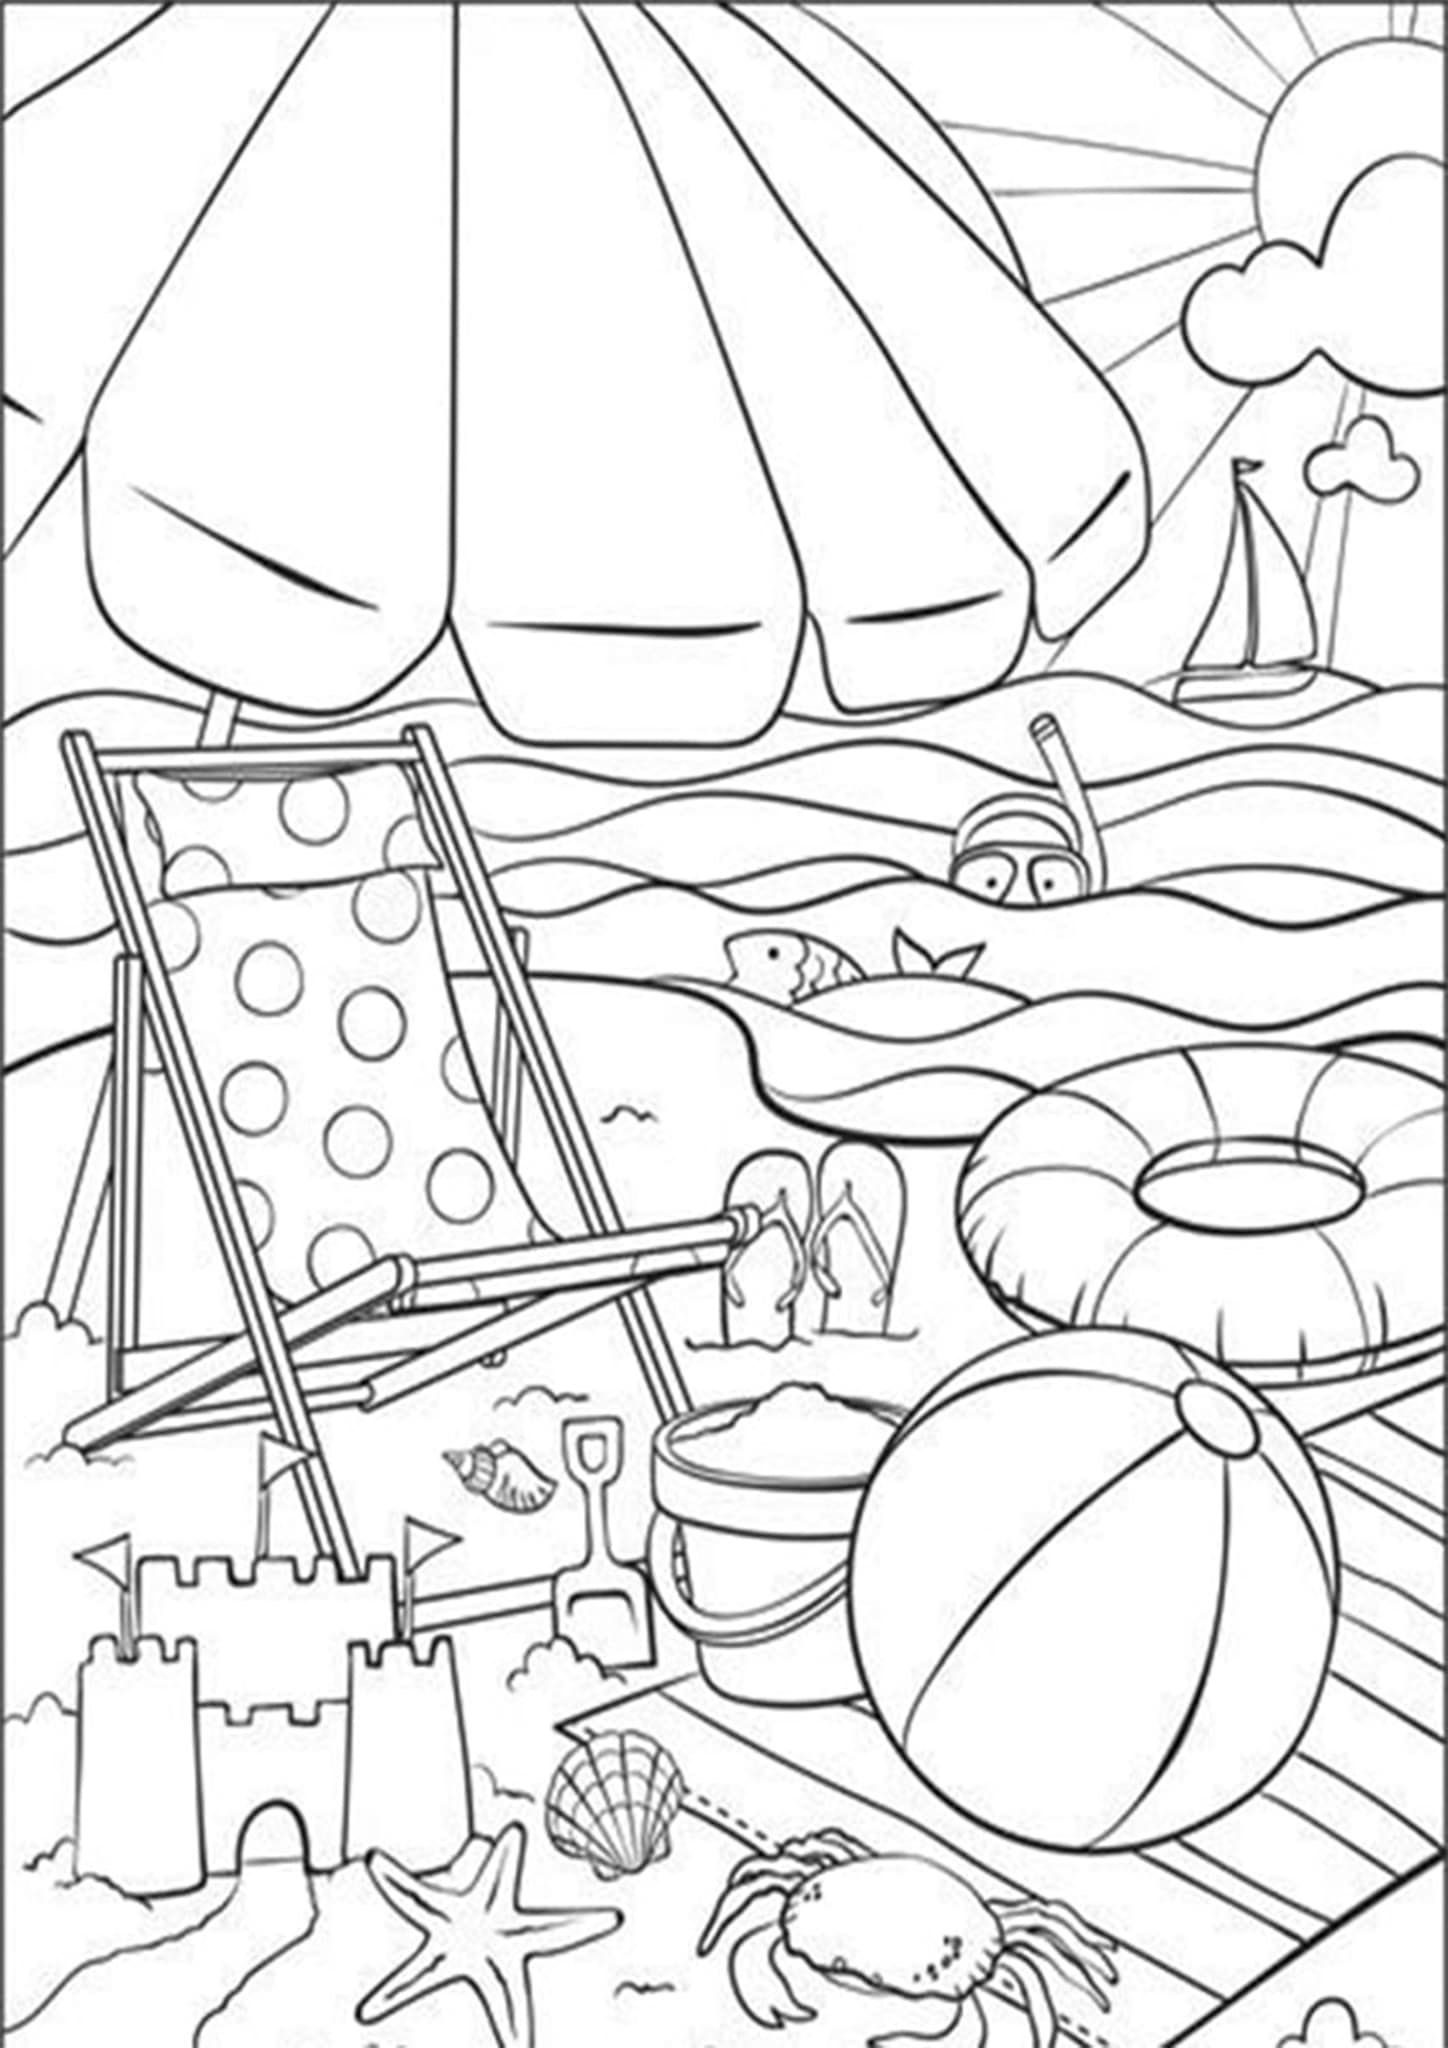 Free Easy To Print Summer Coloring Pages Summer Coloring Pages Beach Coloring Pages Coloring Pages